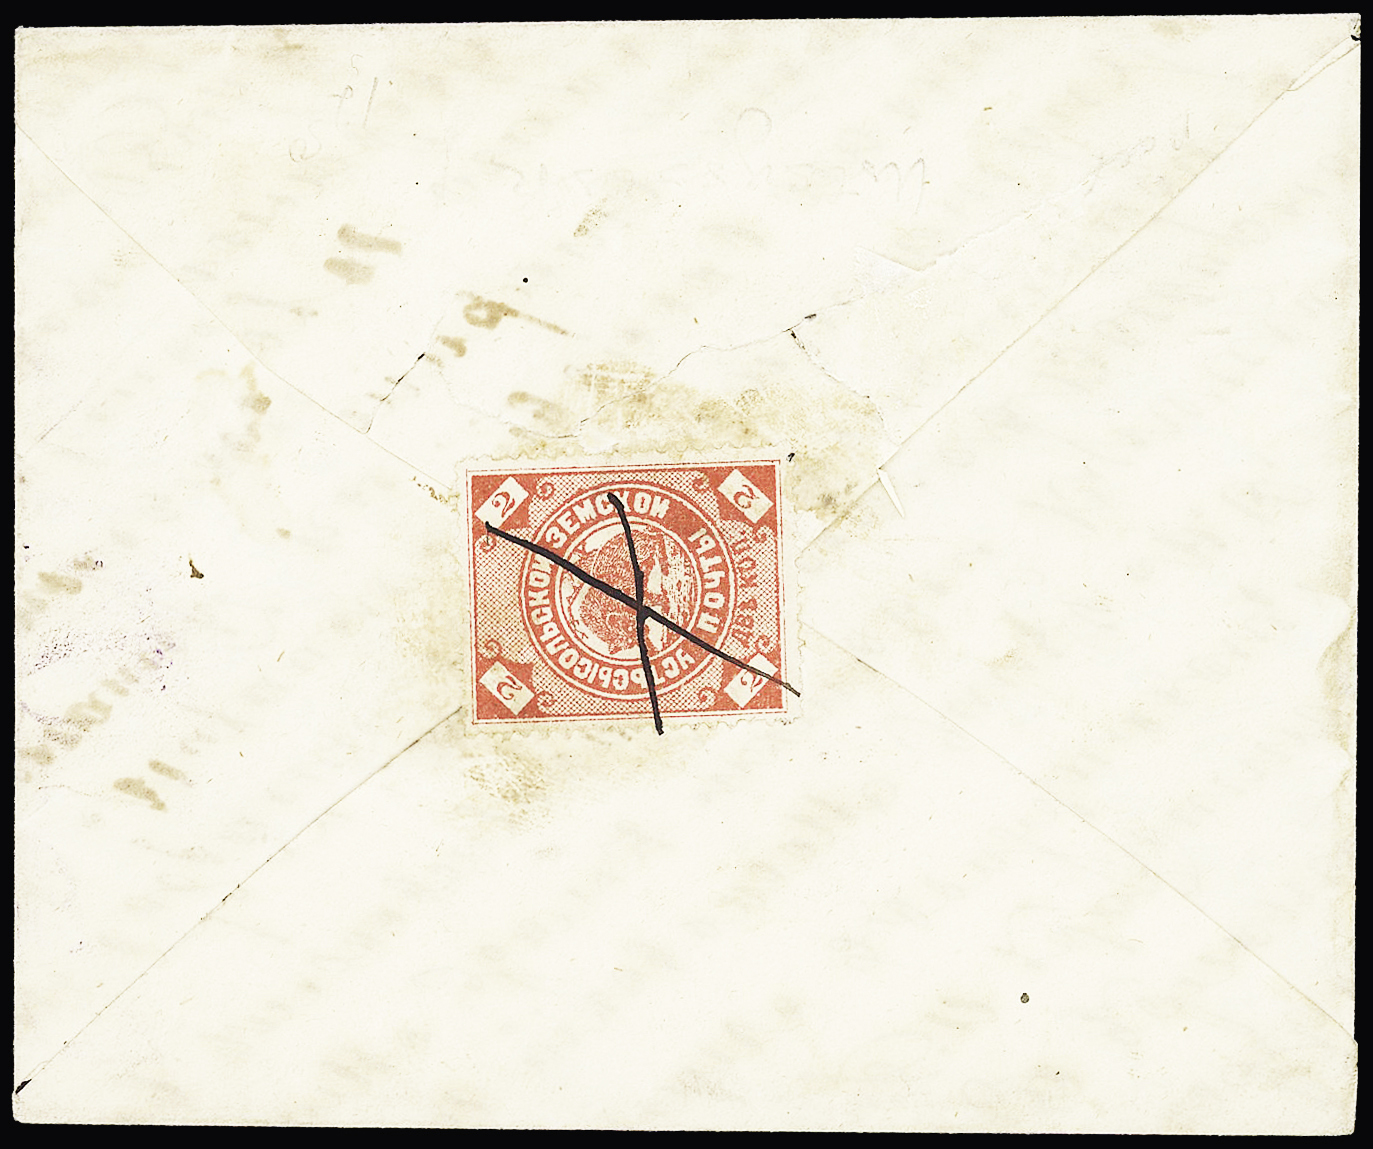 Lot 580 - Eastern Europe » RUSSIA - ZEMSTVOS » Ustsysolsk (Vologda Government)  -  Le Timbre Classique SA SALE ON OFFERS N ° 37 PARIS